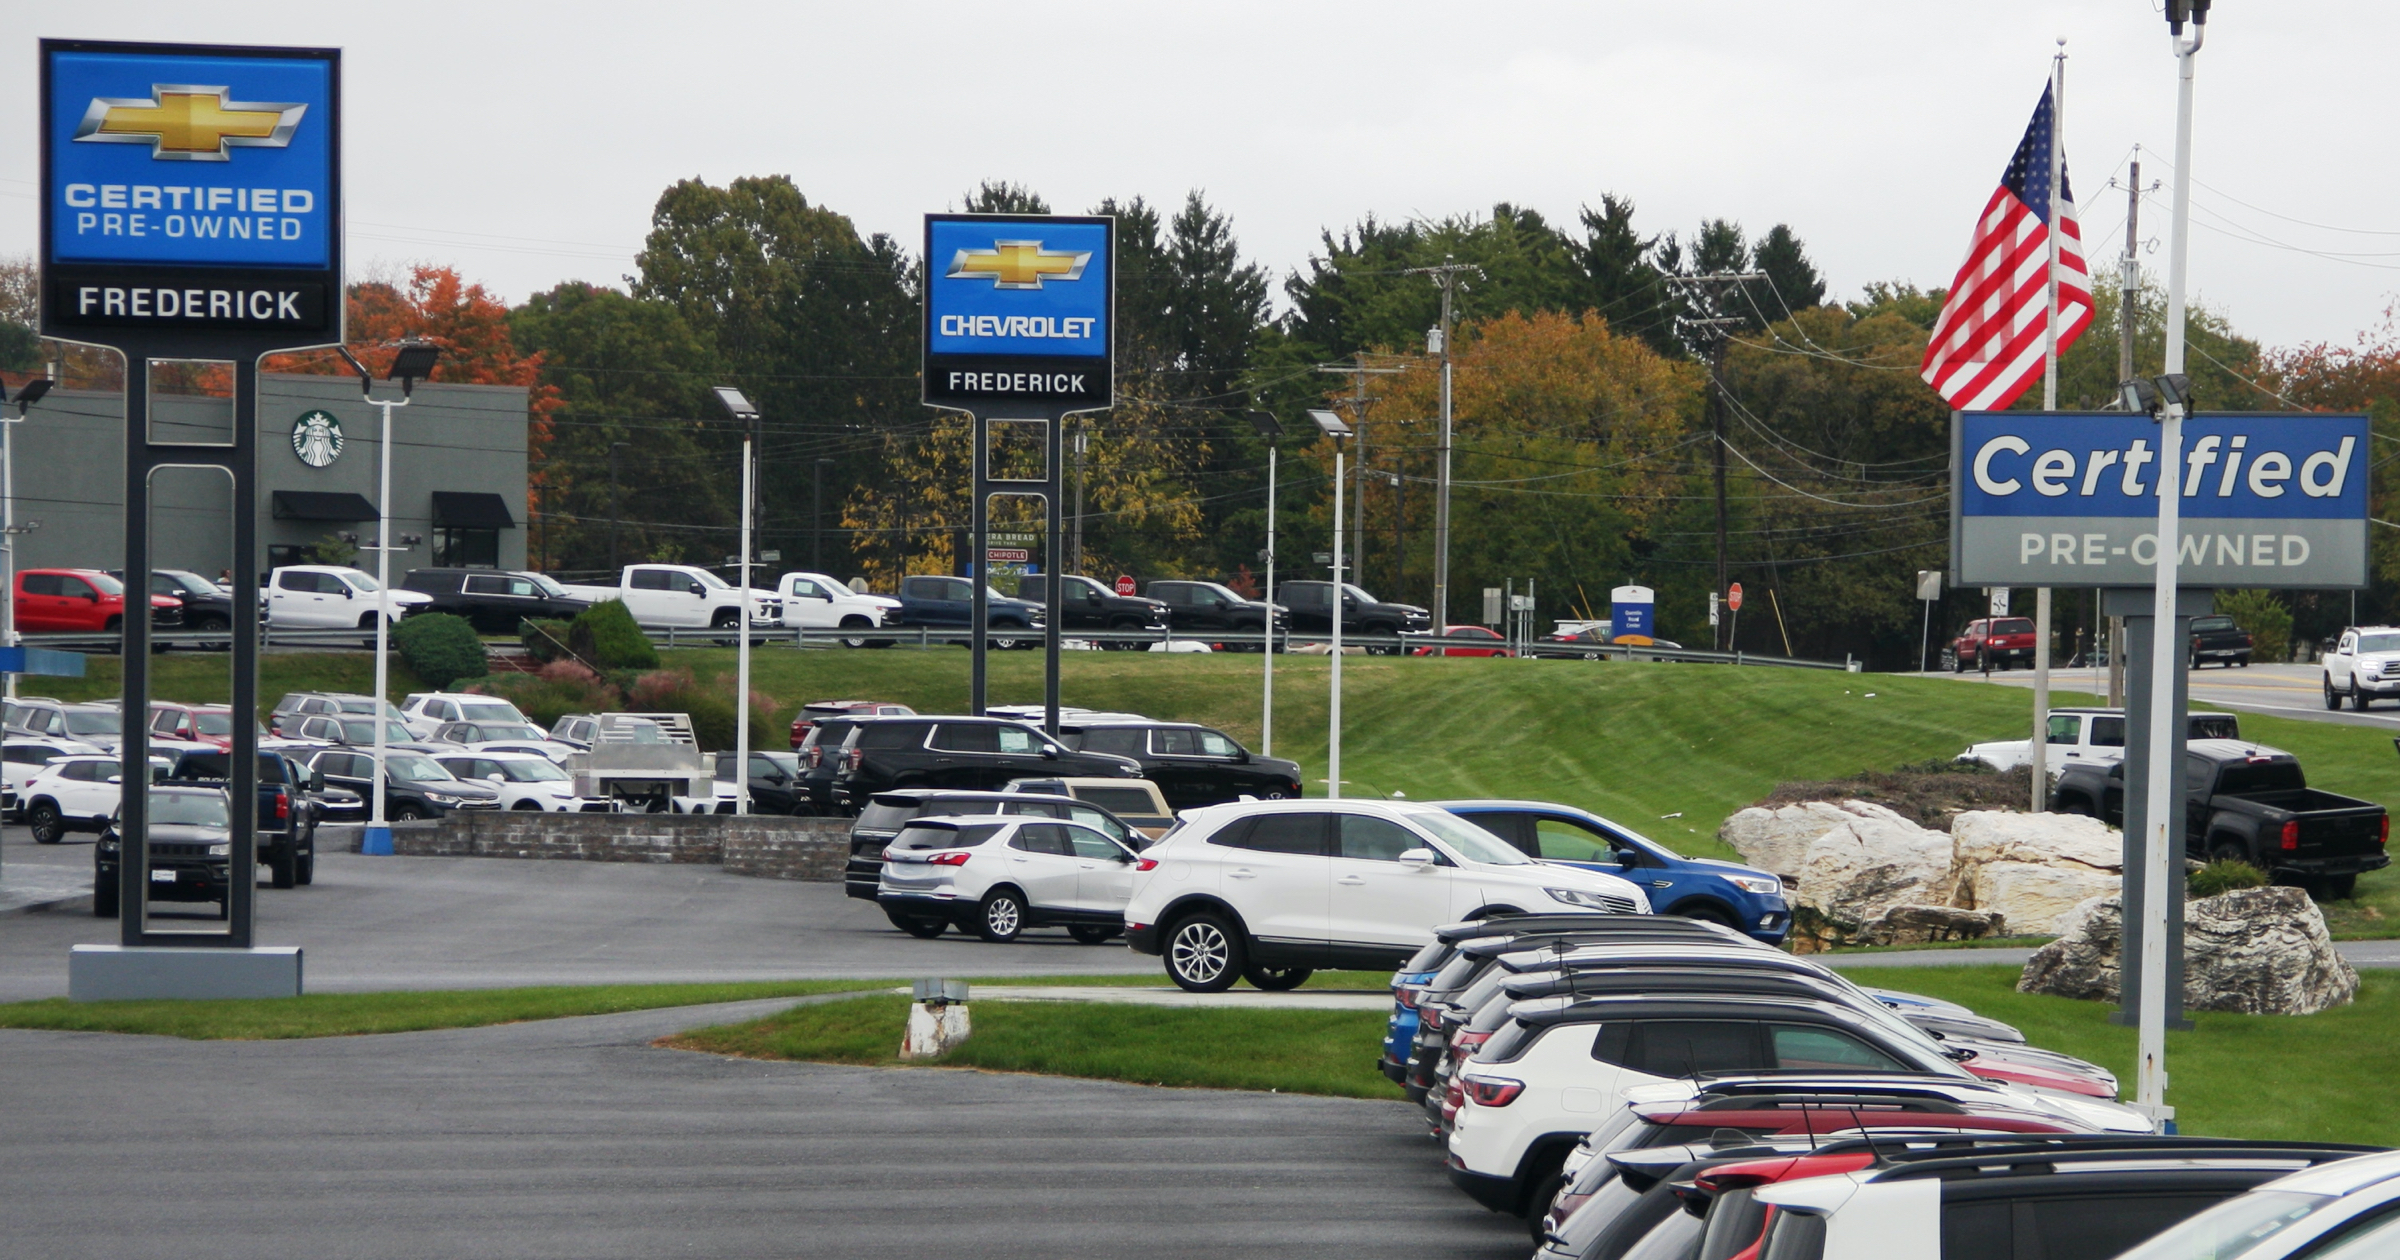 Frederick Chevrolet expands pre-owned operation into former Bennett Toyota lot